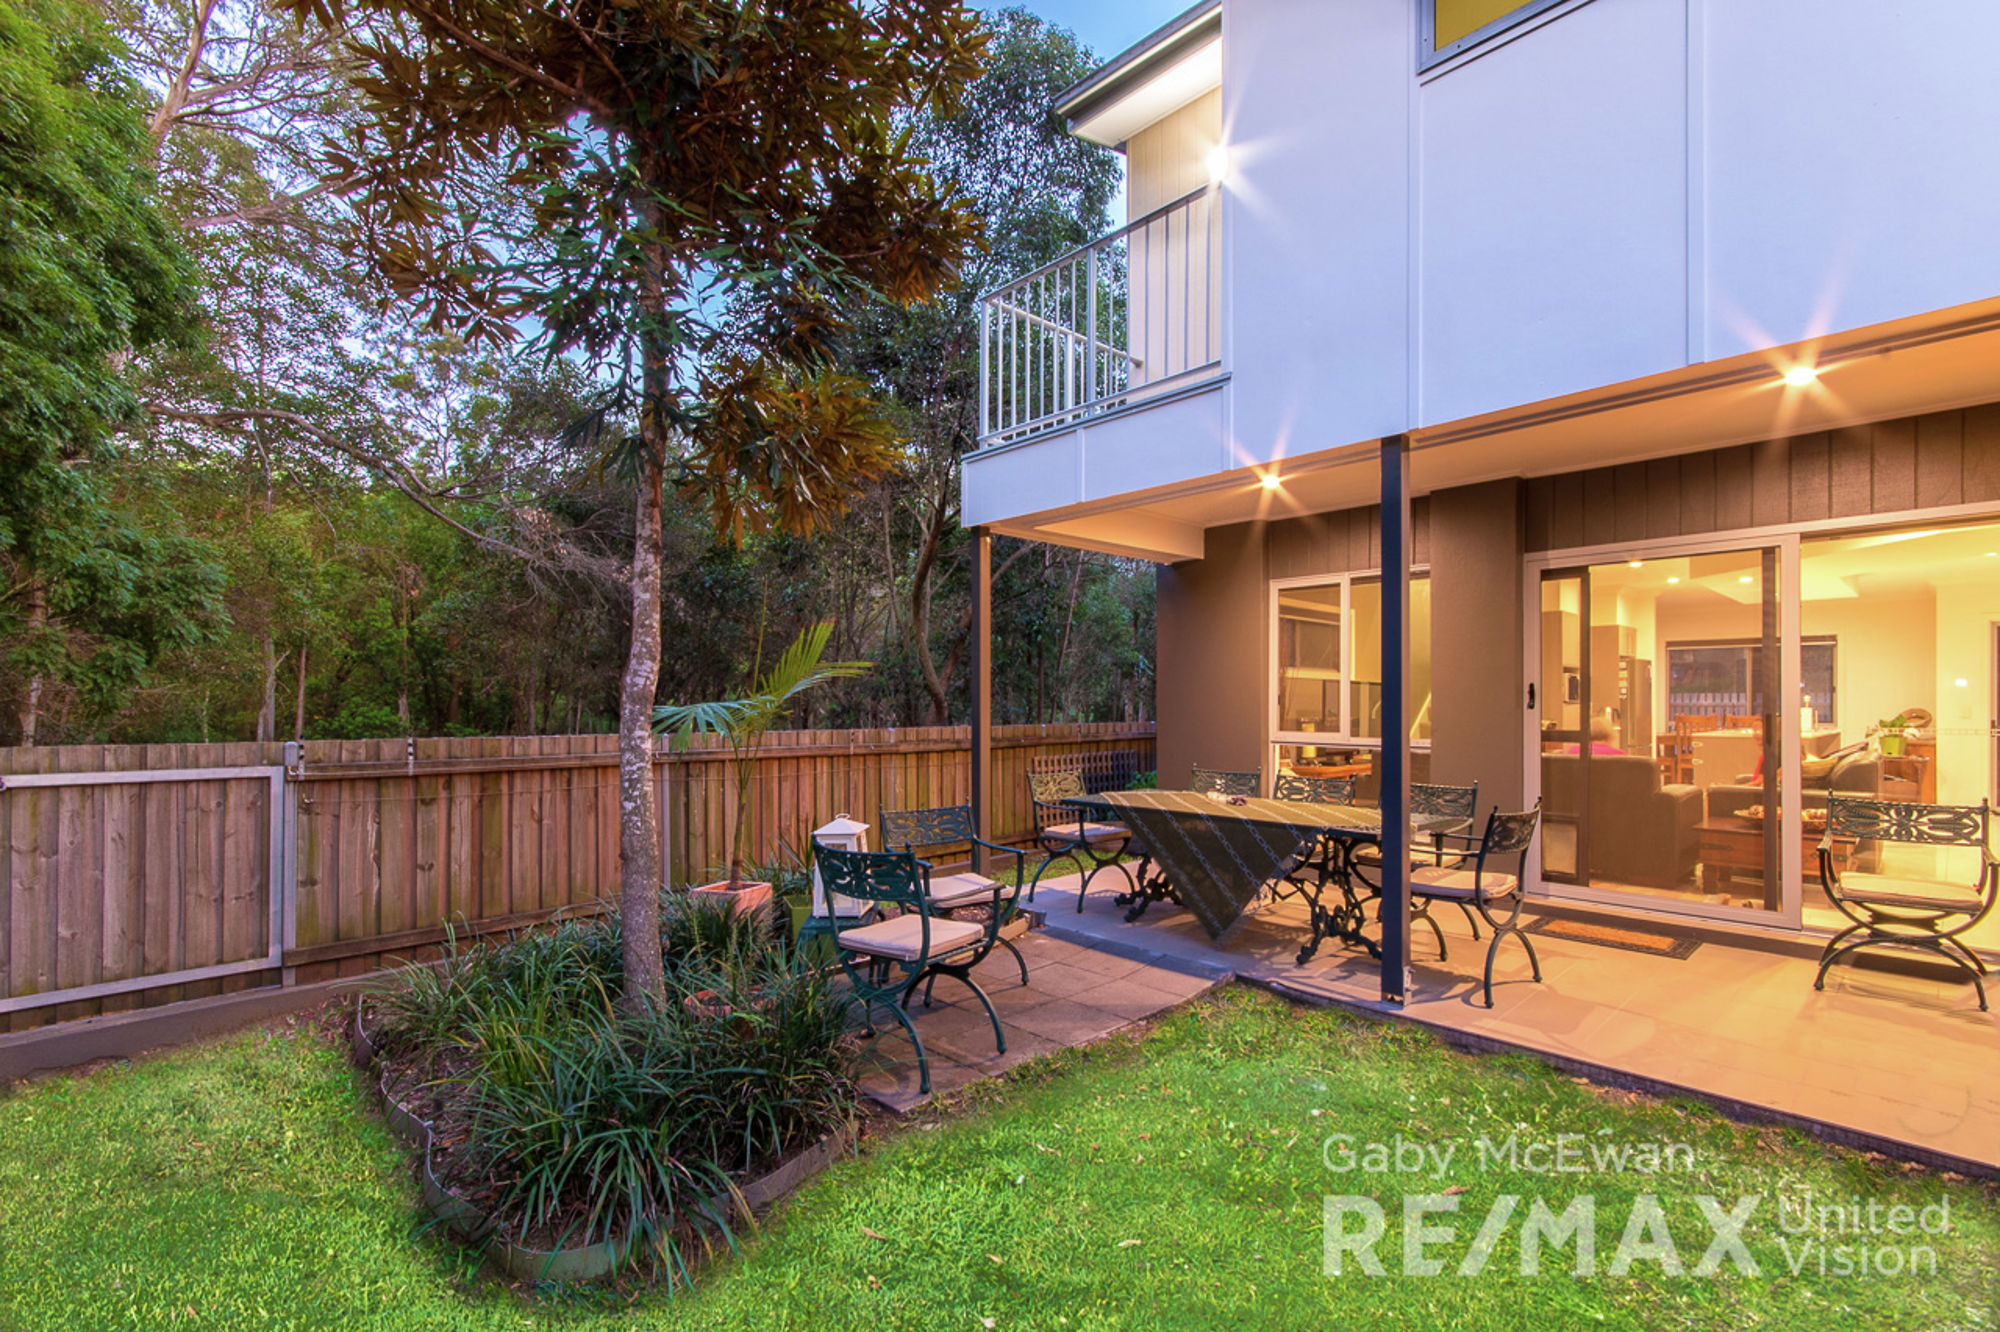 Property in Carina Heights - Offers from $485,000 - $510,000